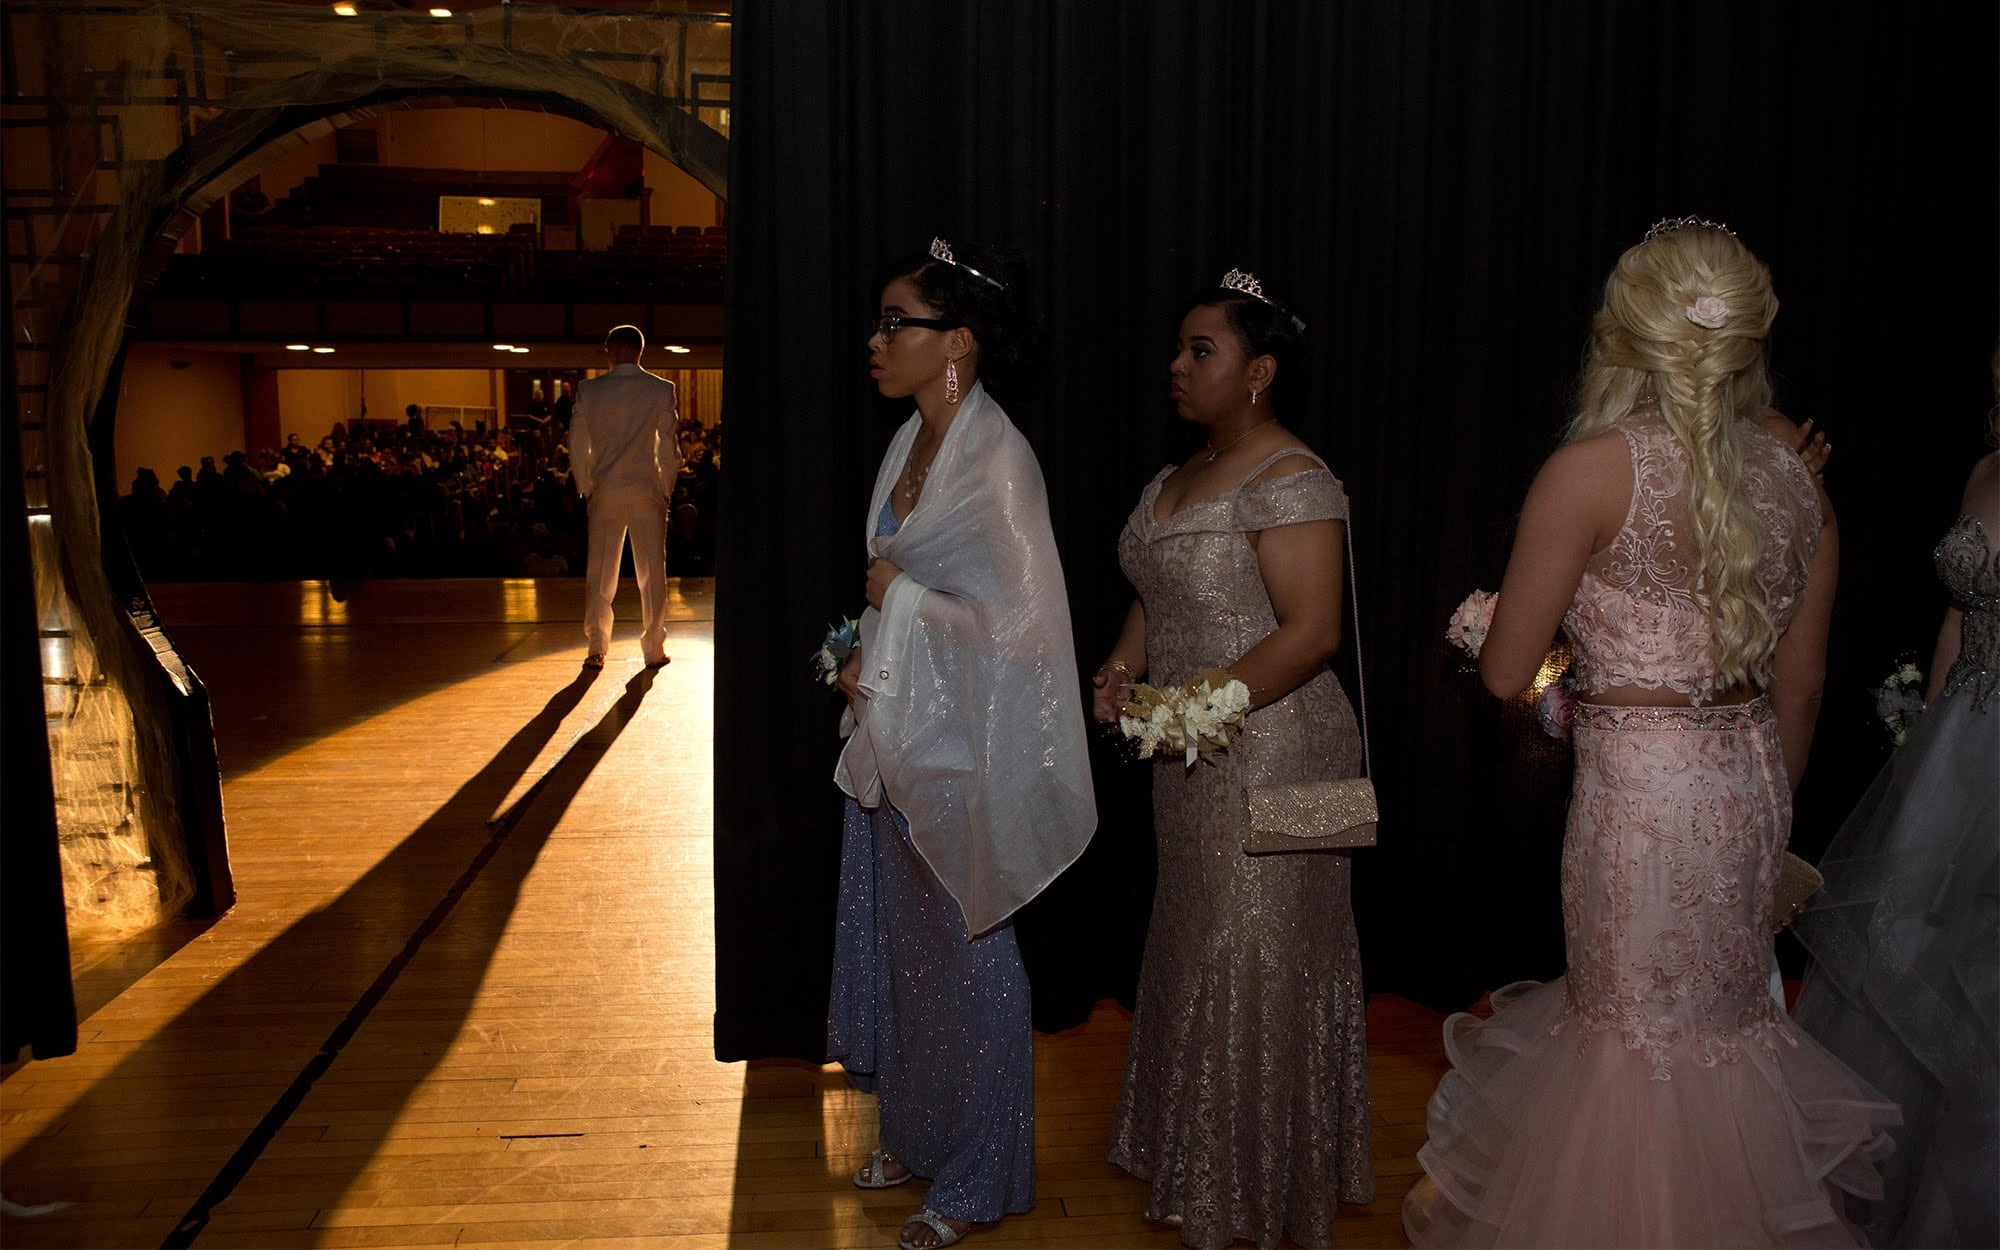 Candidates for prom queen await introduction backstage during the 2018 Clairton Promenade. (Photo by Heather Mull/PublicSource)